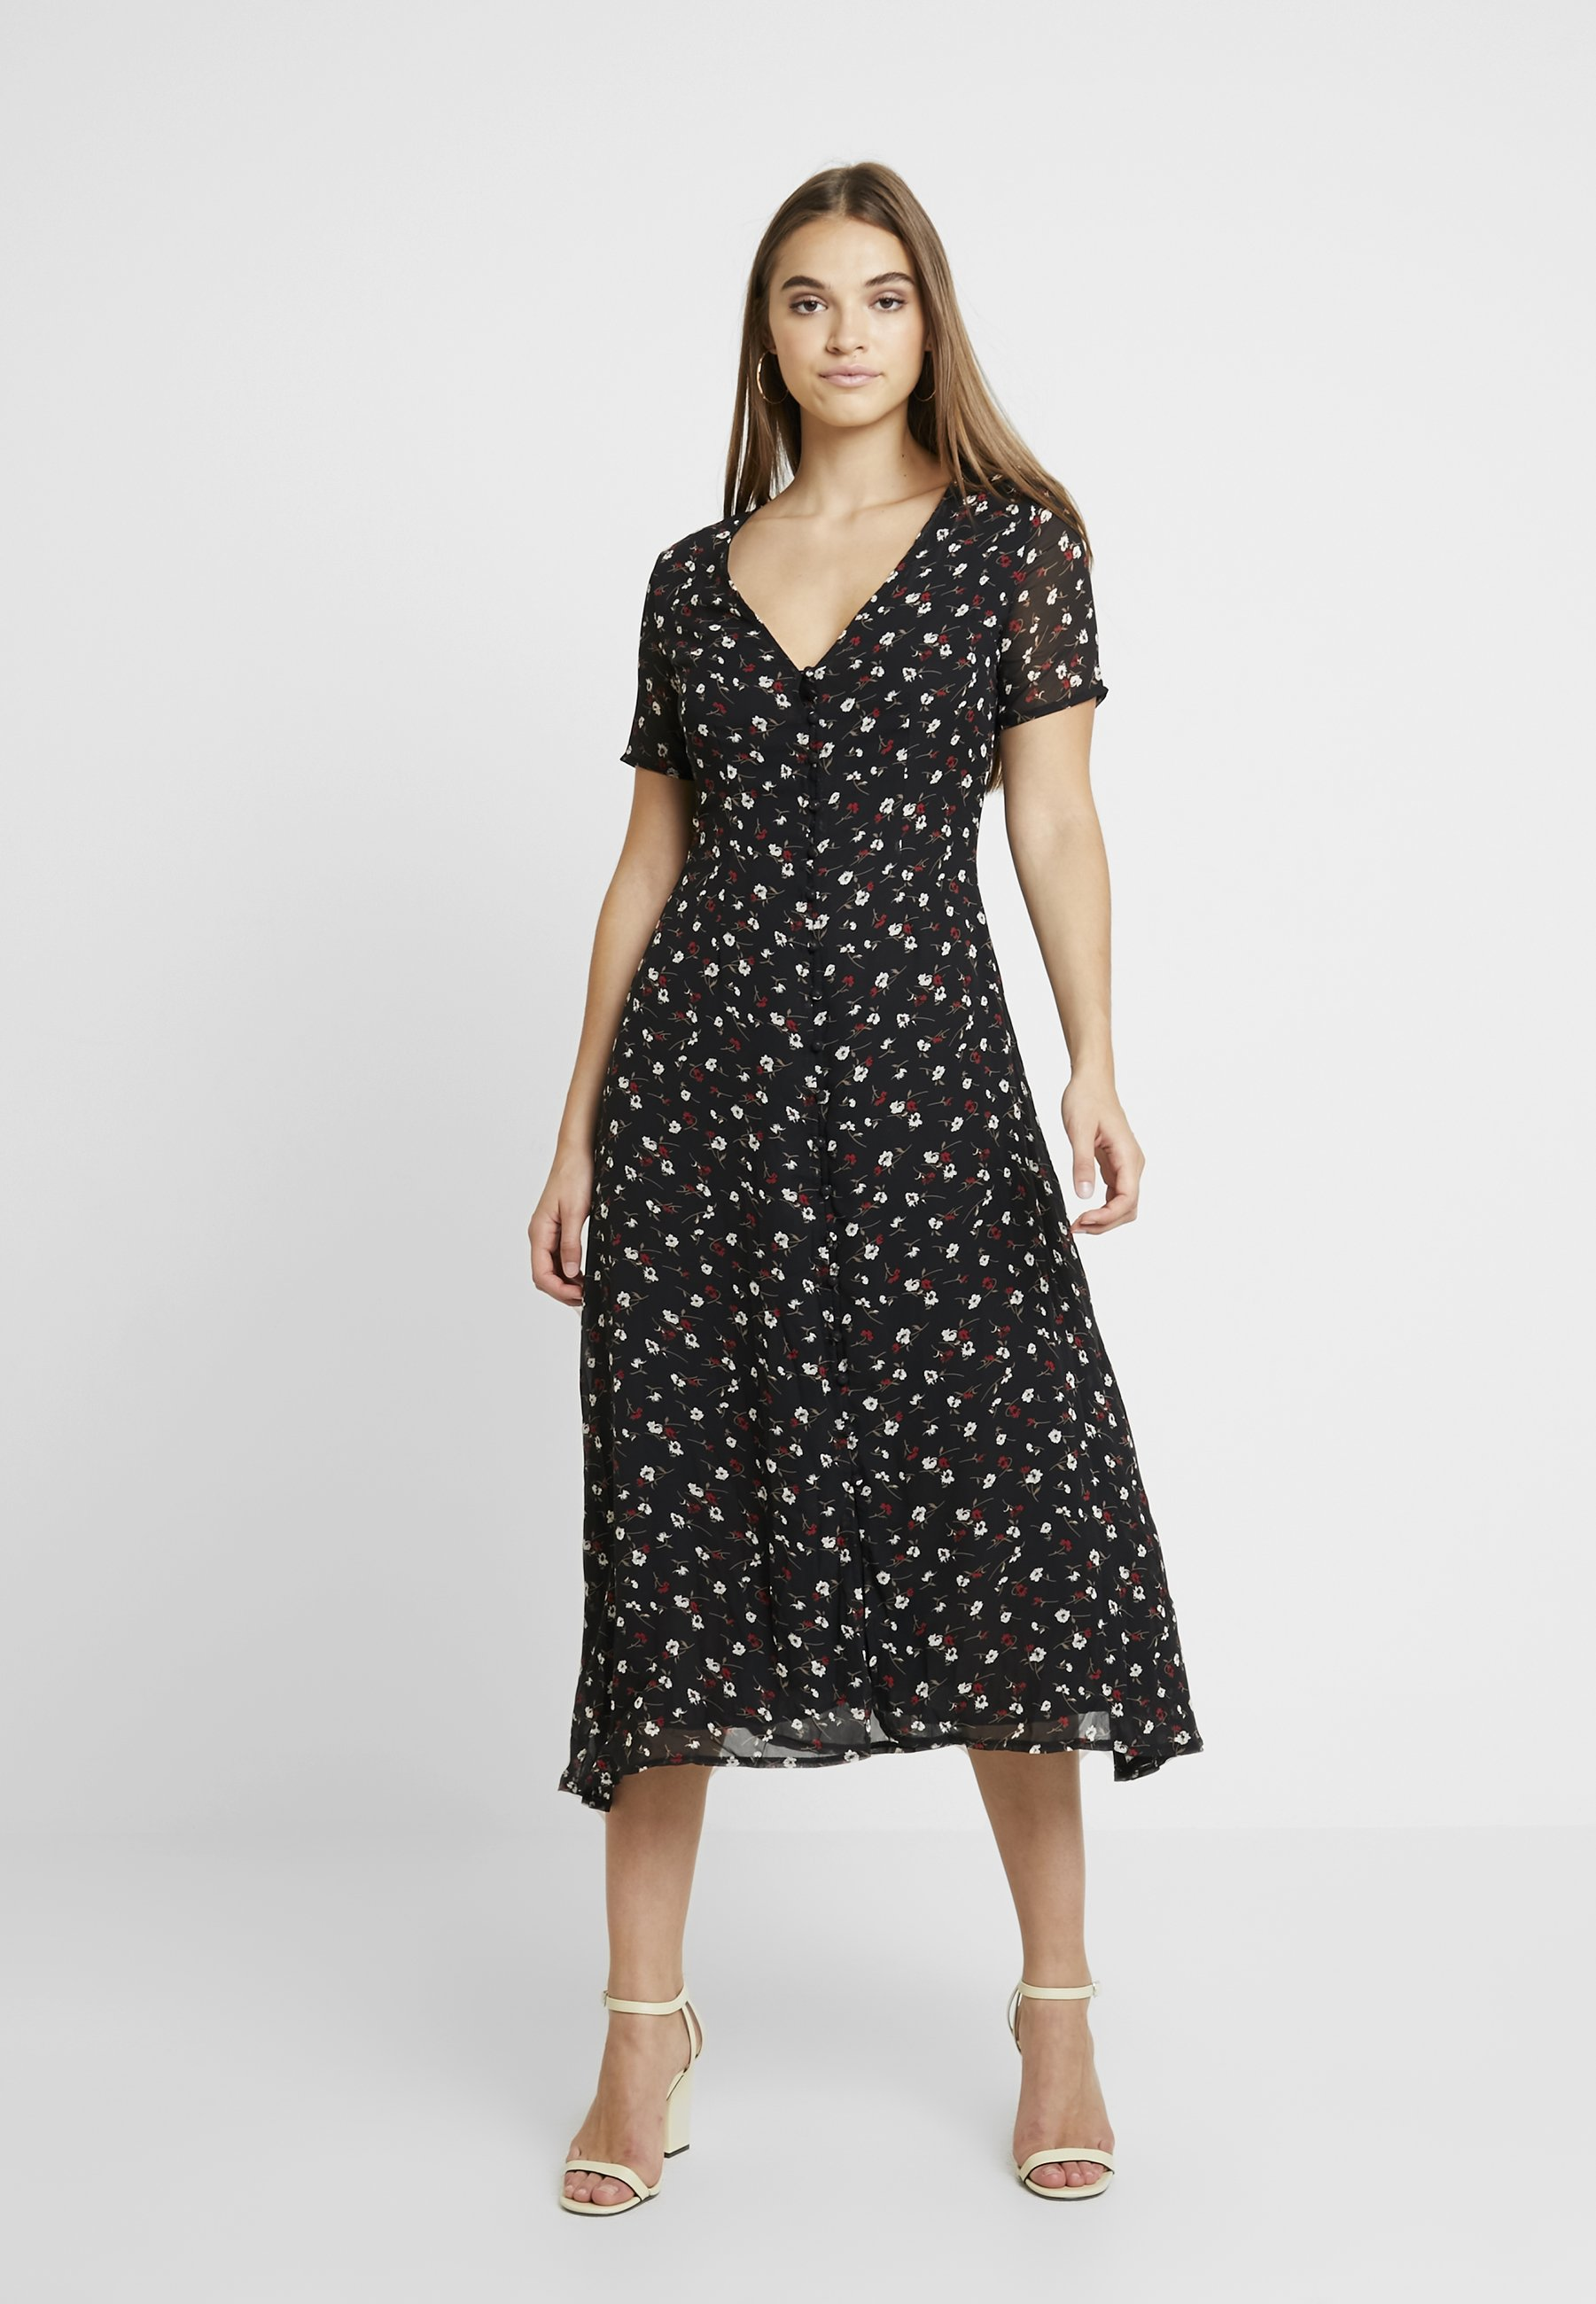 Maxi Floral Longue Missguided Front DressRobe Button Black 8vwmN0nyO